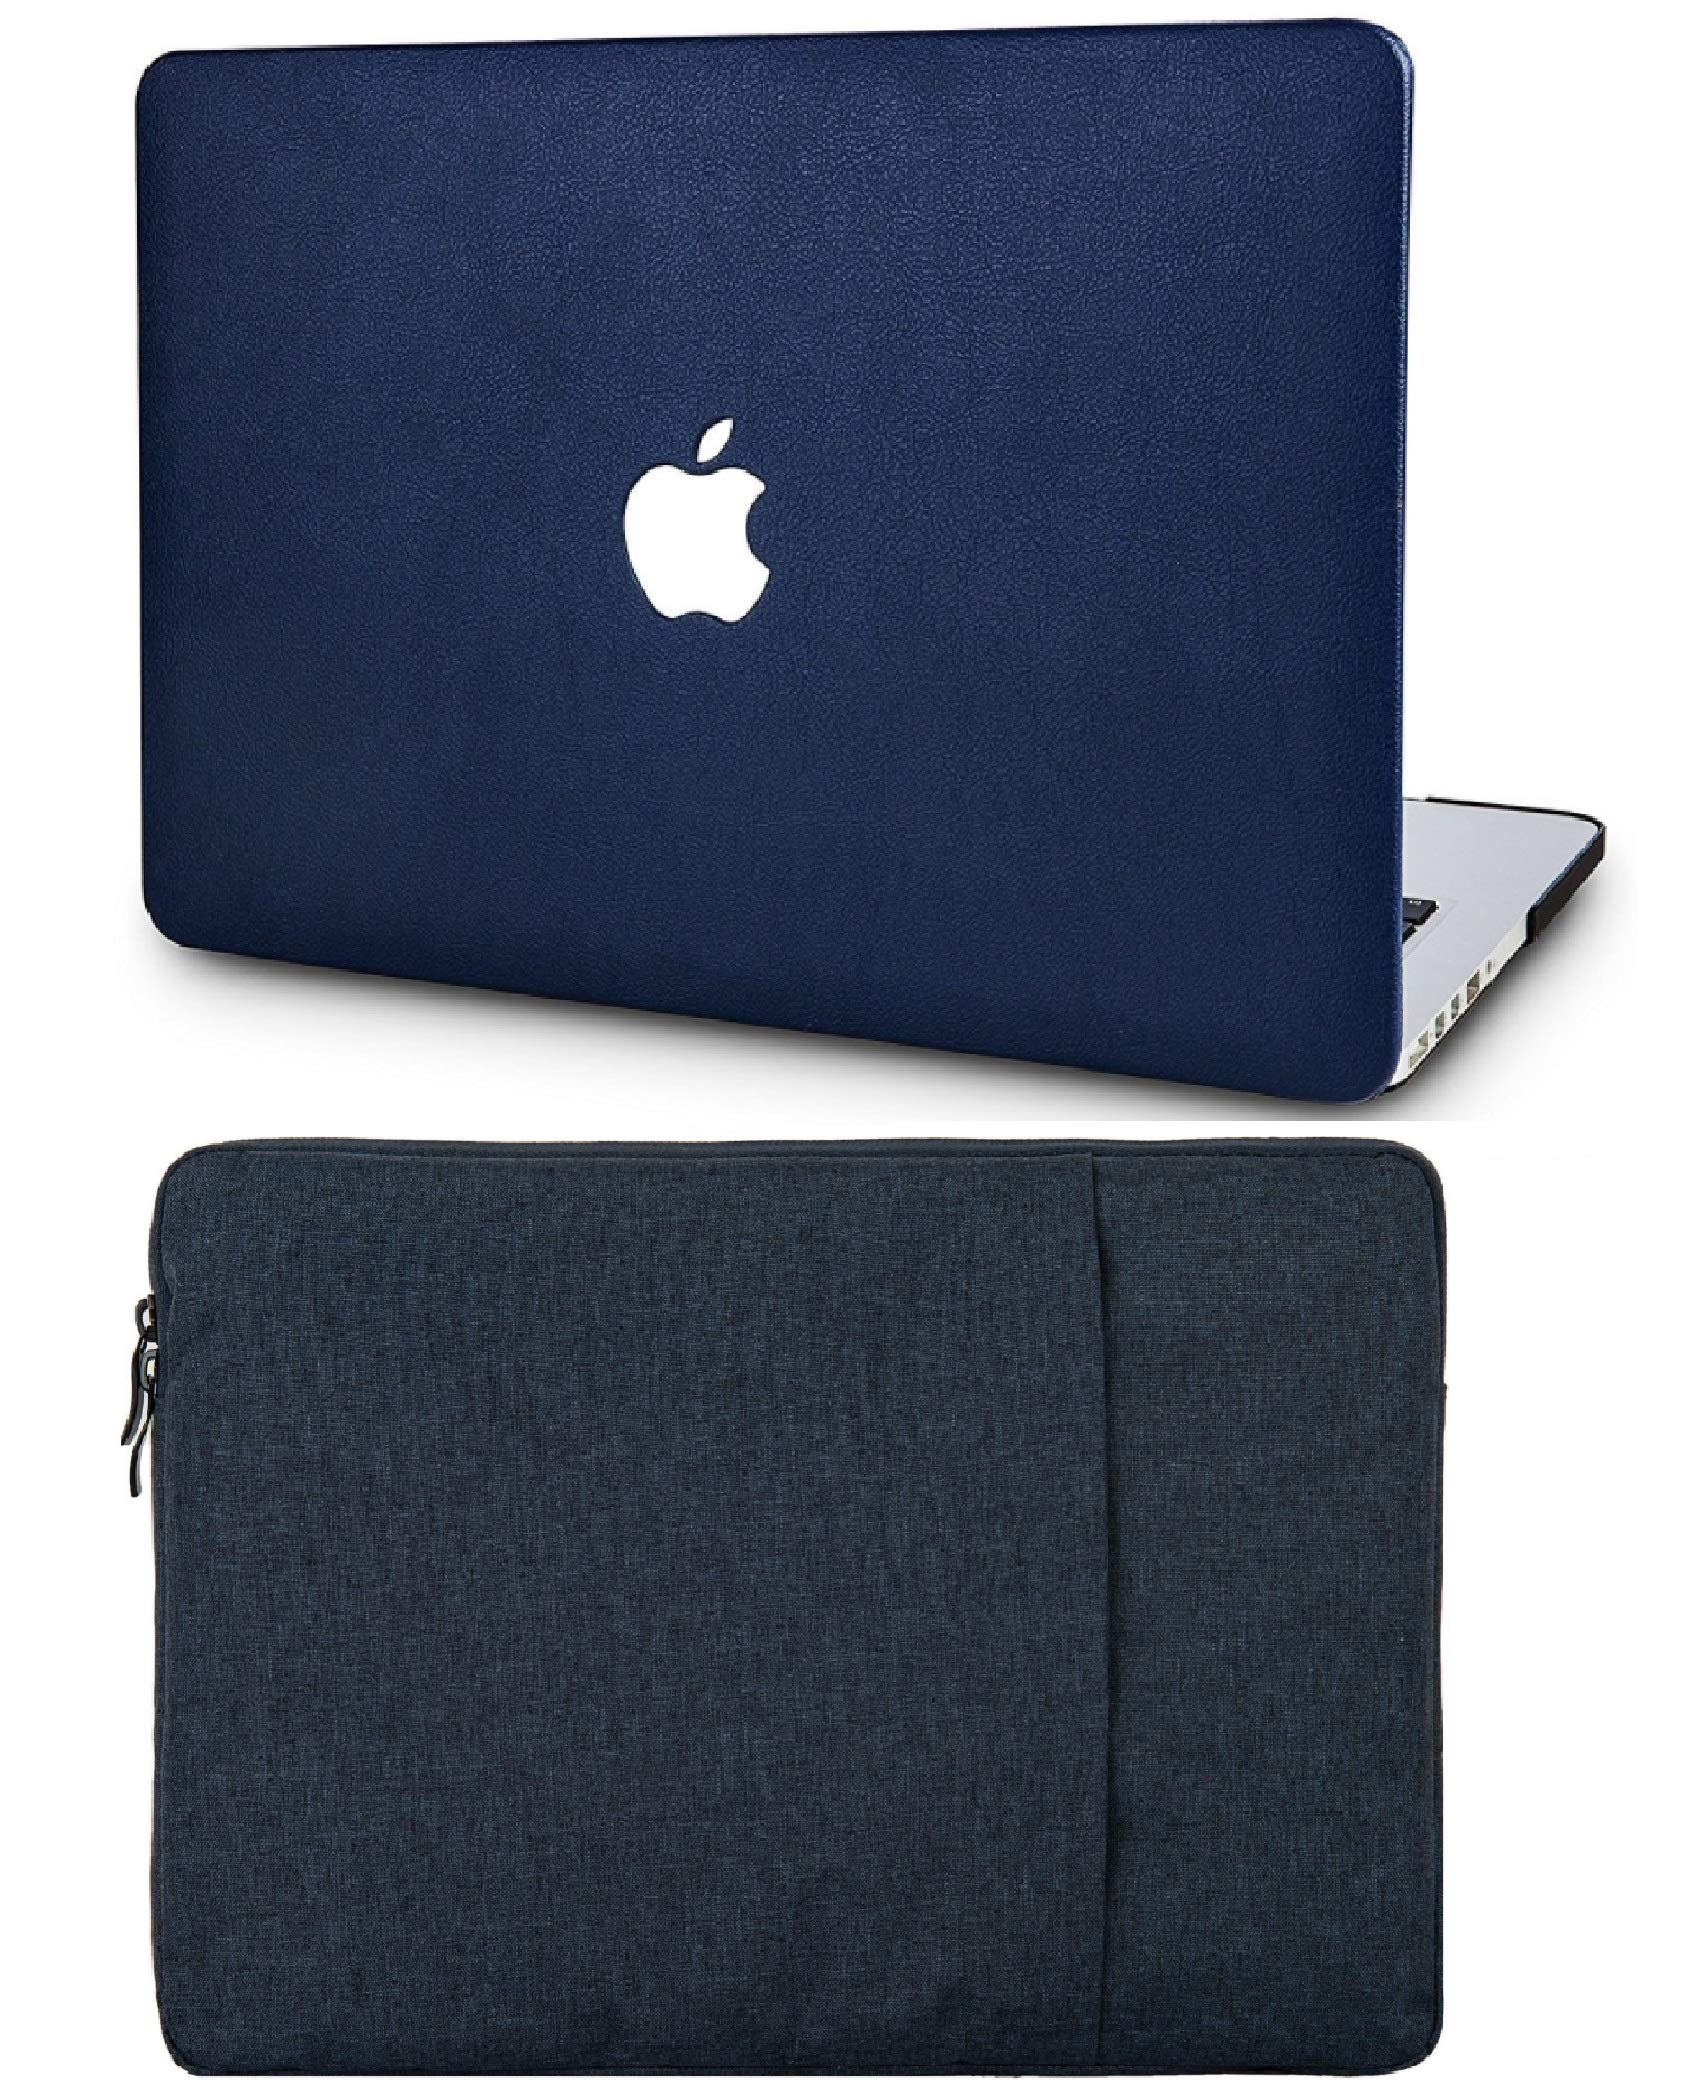 """KECC Laptop Case for MacBook Air 13"""" with Sleeve Italian Leather Case A1466/A1369 2 in 1 Bundle (Dark Blue Leather)"""